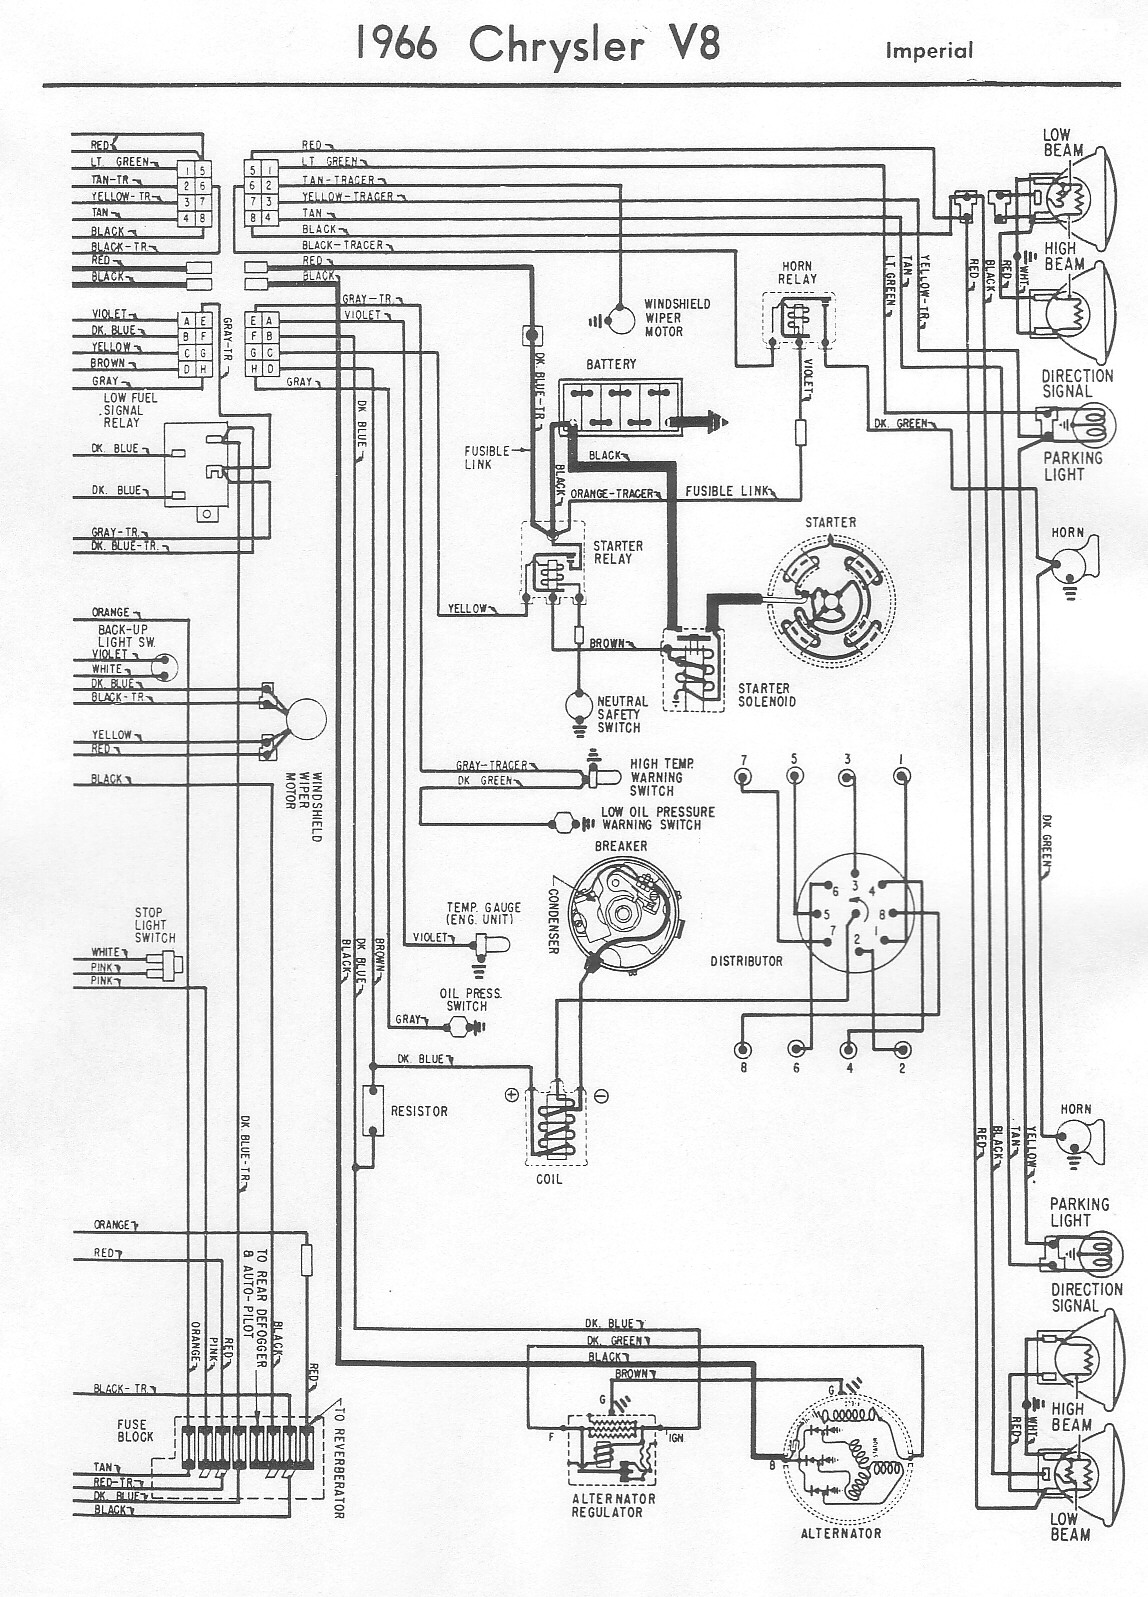 1970 Sport Satellite Wiring Diagram - Wiring Diagrams on 1970 dodge dart radio, 1996 dodge ram wiring diagram, 1968 plymouth fury wiring diagram, 1970 dodge dart seats, 1964 dodge dart wiring diagram, 1970 dodge dart rally dash, 1970 dodge dart headlights, 1970 dodge dart engine, 1970 dodge dart drive shaft, 1993 dodge d150 wiring diagram, 1973 dodge challenger wiring diagram, 1974 plymouth duster wiring diagram, 1970 dodge dart fuel tank, 1963 dodge dart wiring diagram, 1974 dodge challenger wiring diagram, 1973 dodge dart wiring diagram, 1970 dodge dart exhaust system, 1970 dodge dart manual, 1970 dodge dart colors, 1970 dodge dart radiator,